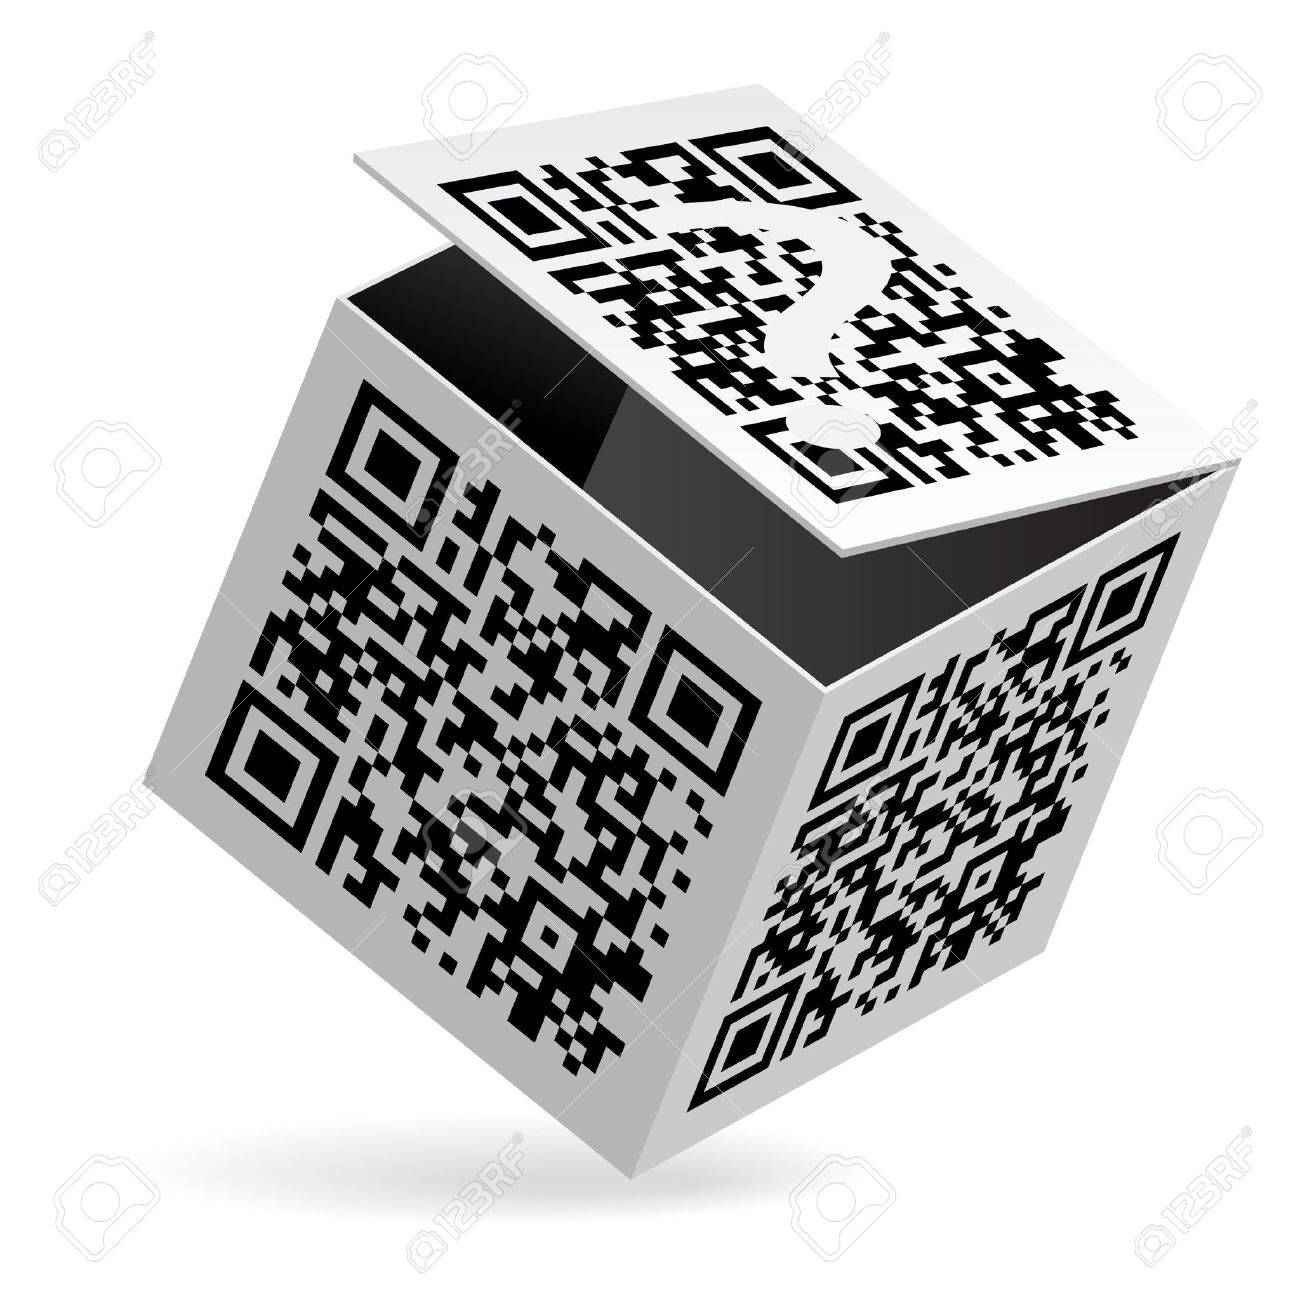 Illustration of QR code on open White Box Stock Vector - 14447641